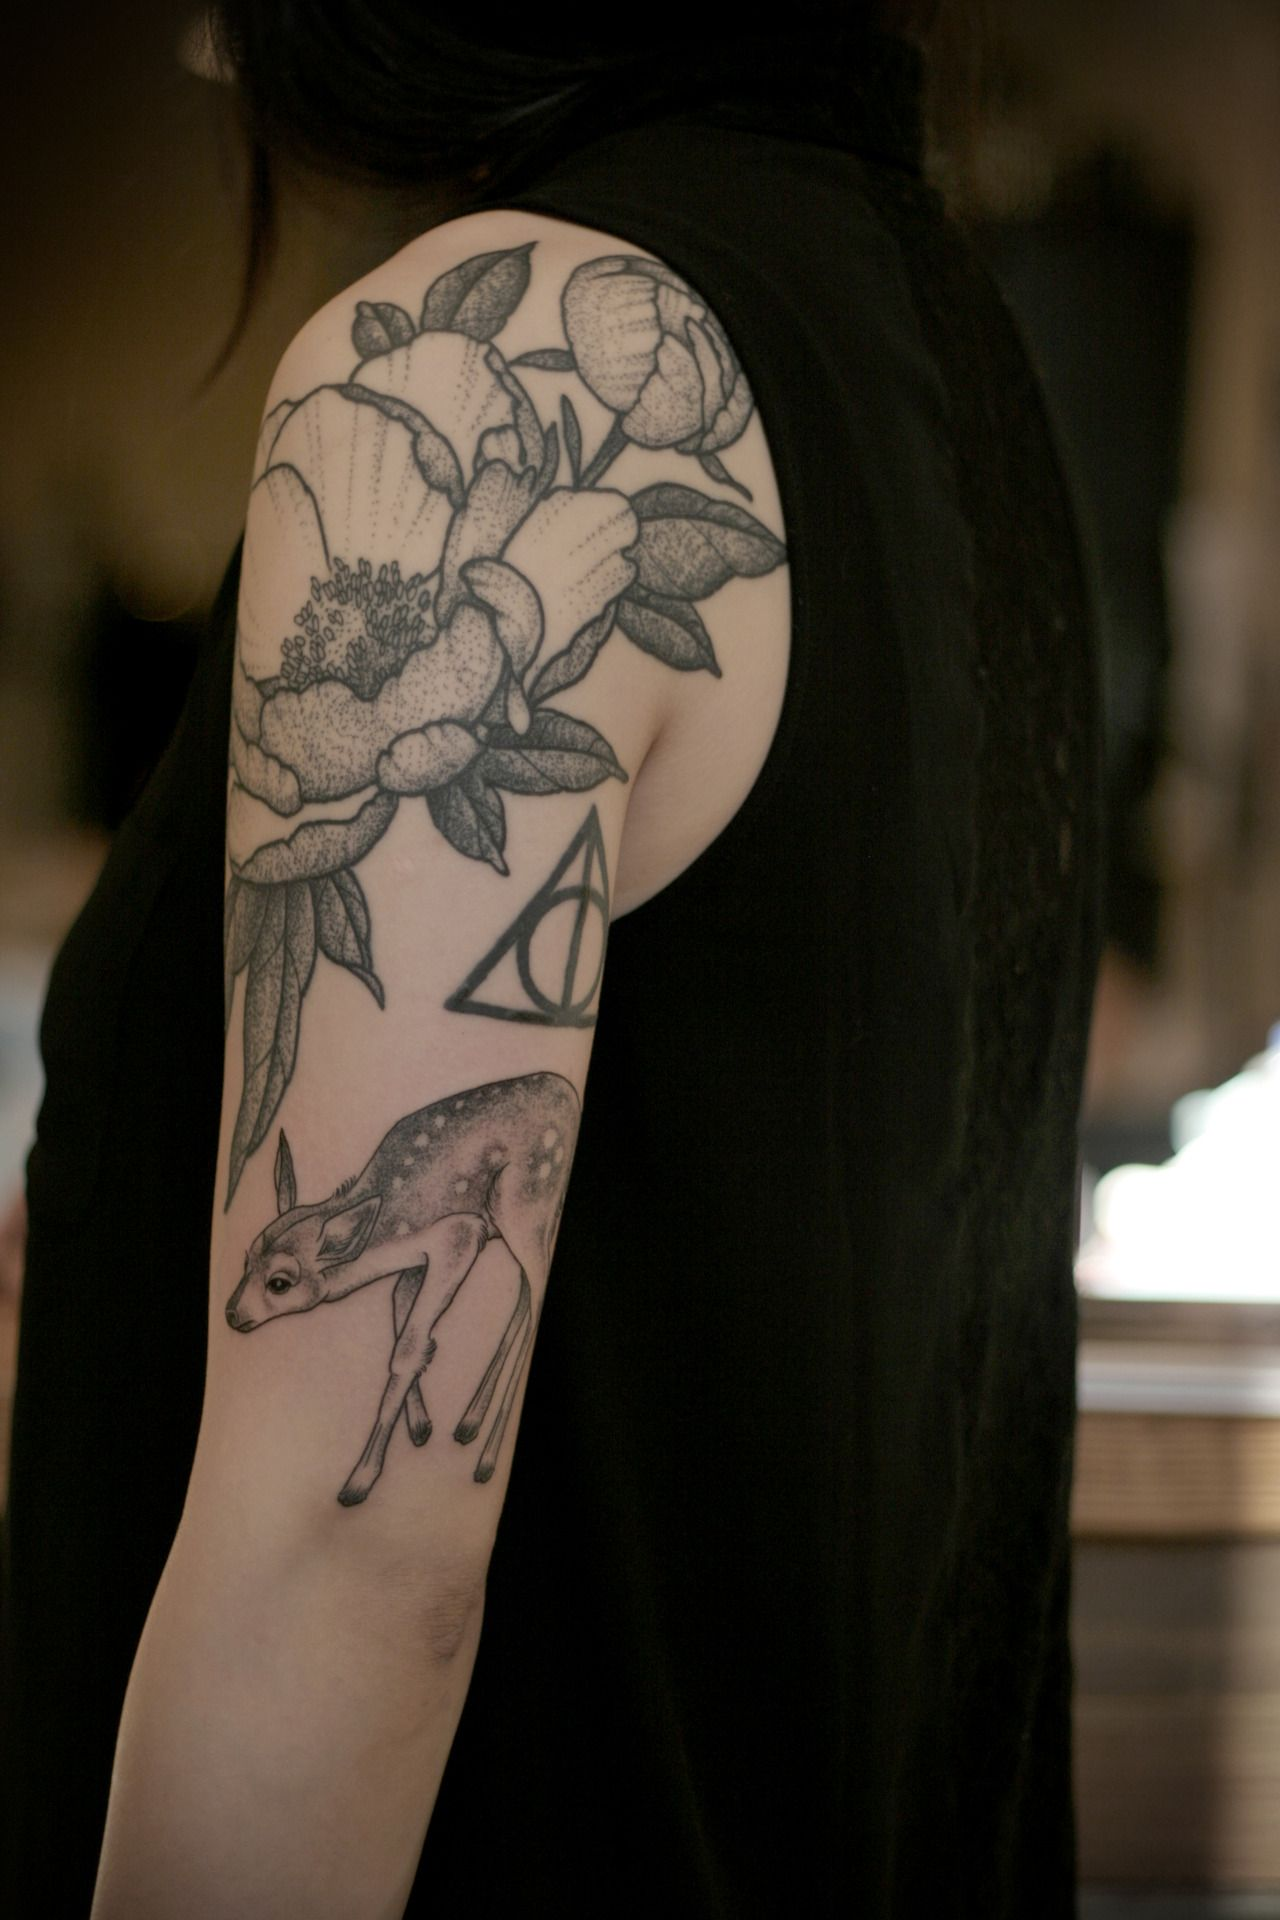 Stippling Tattoo Sleeves: This Half Sleeve Doesn't Look Like It Was All Done At The